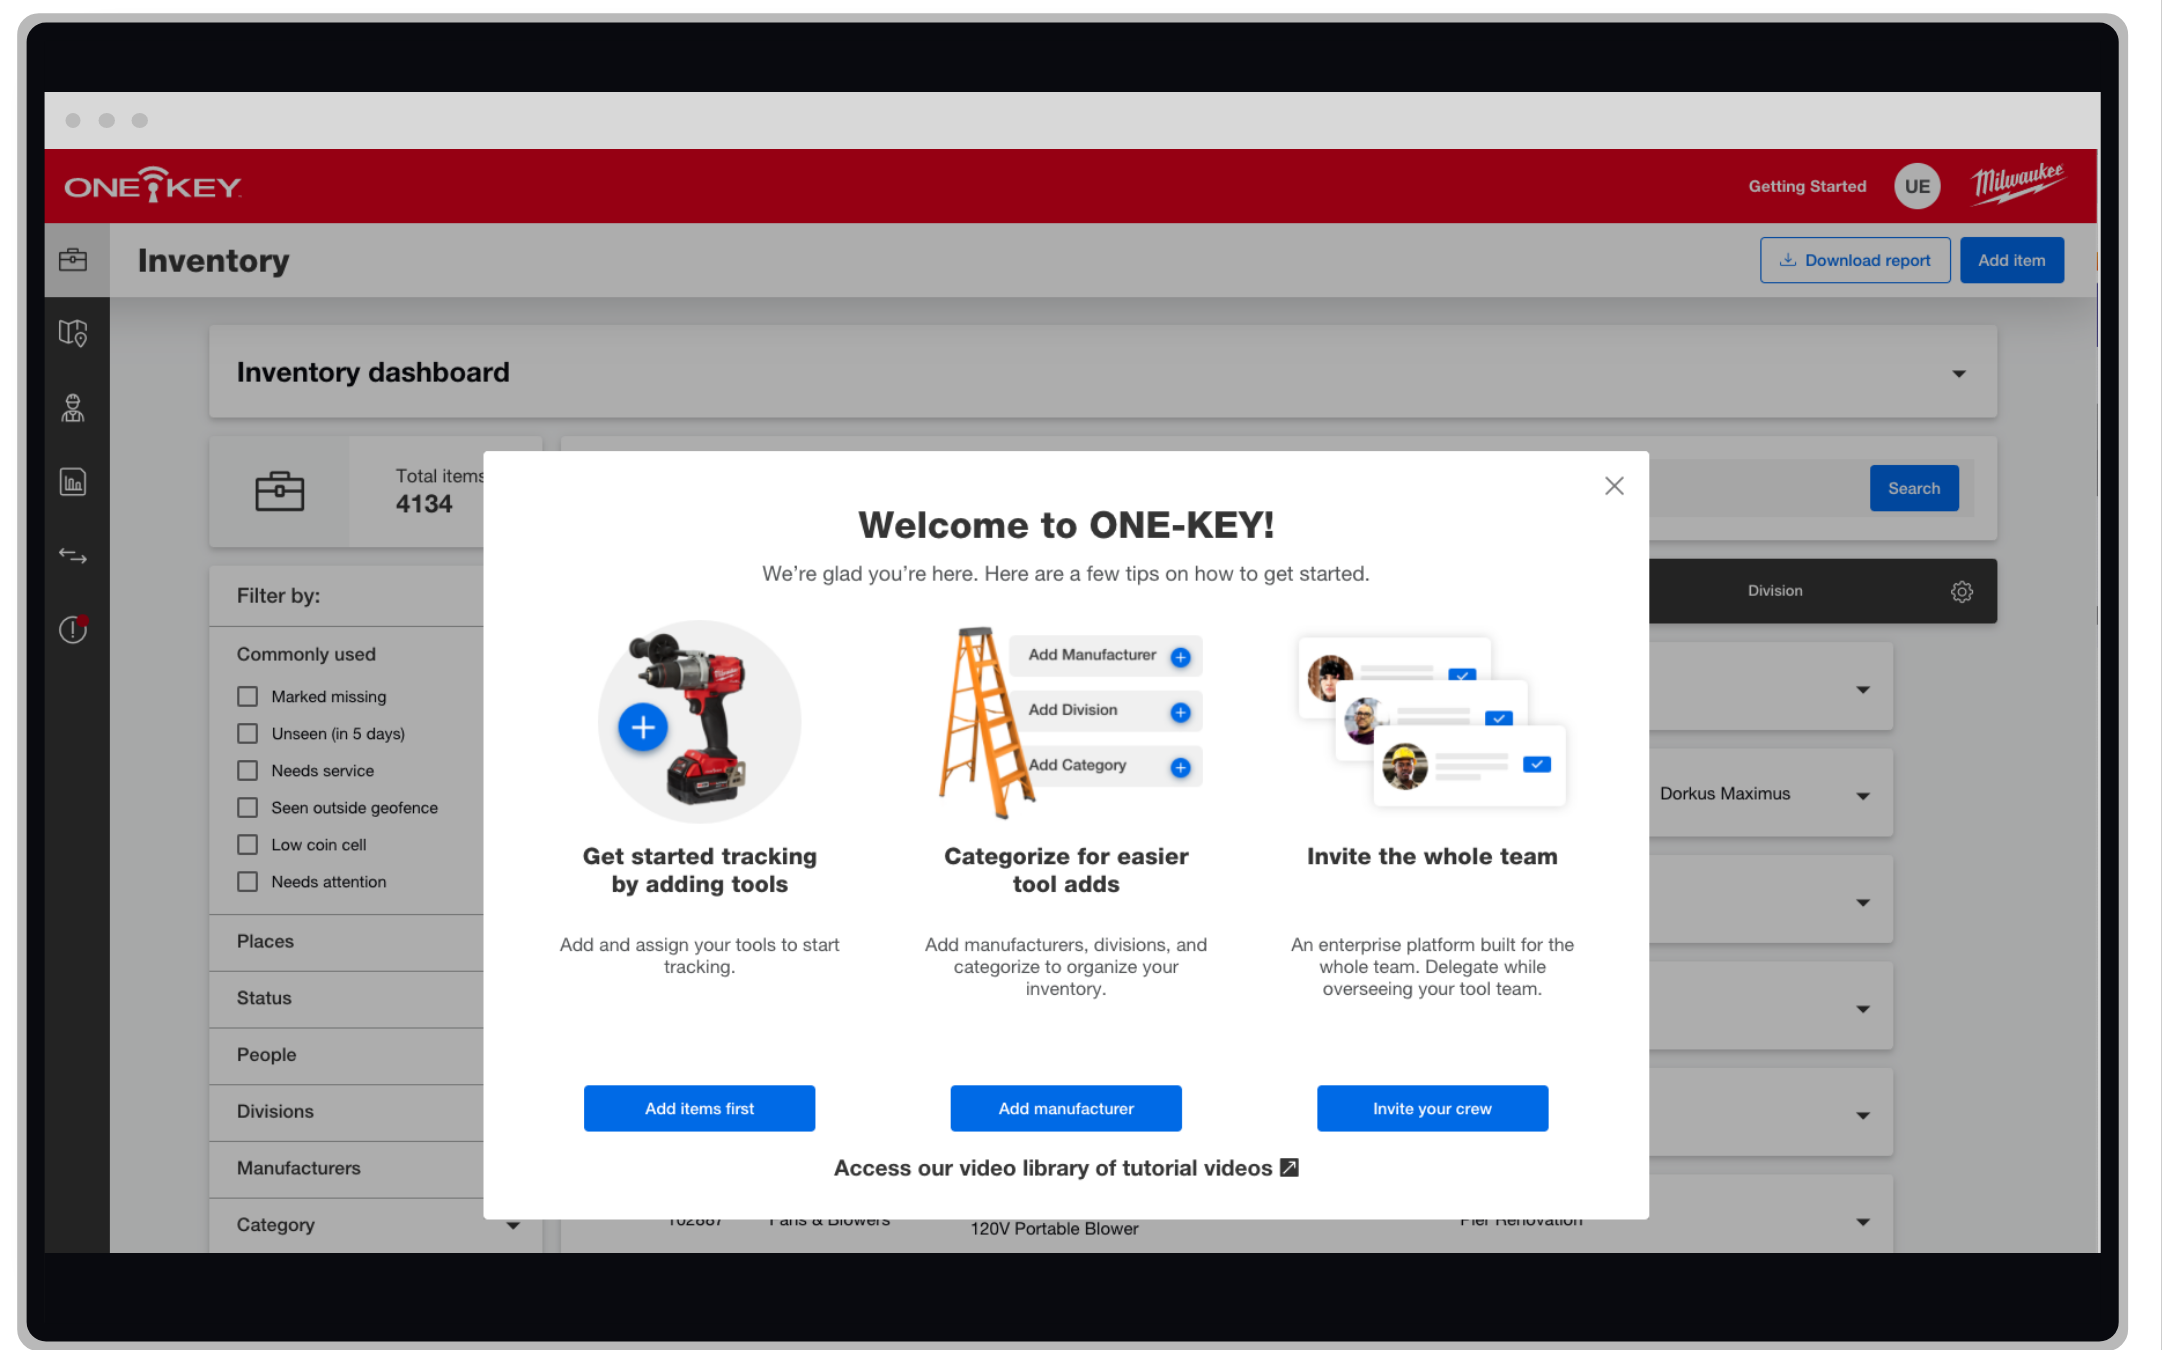 One-Key construction inventory management app shows educational screens to help new users learn how to interact with the app